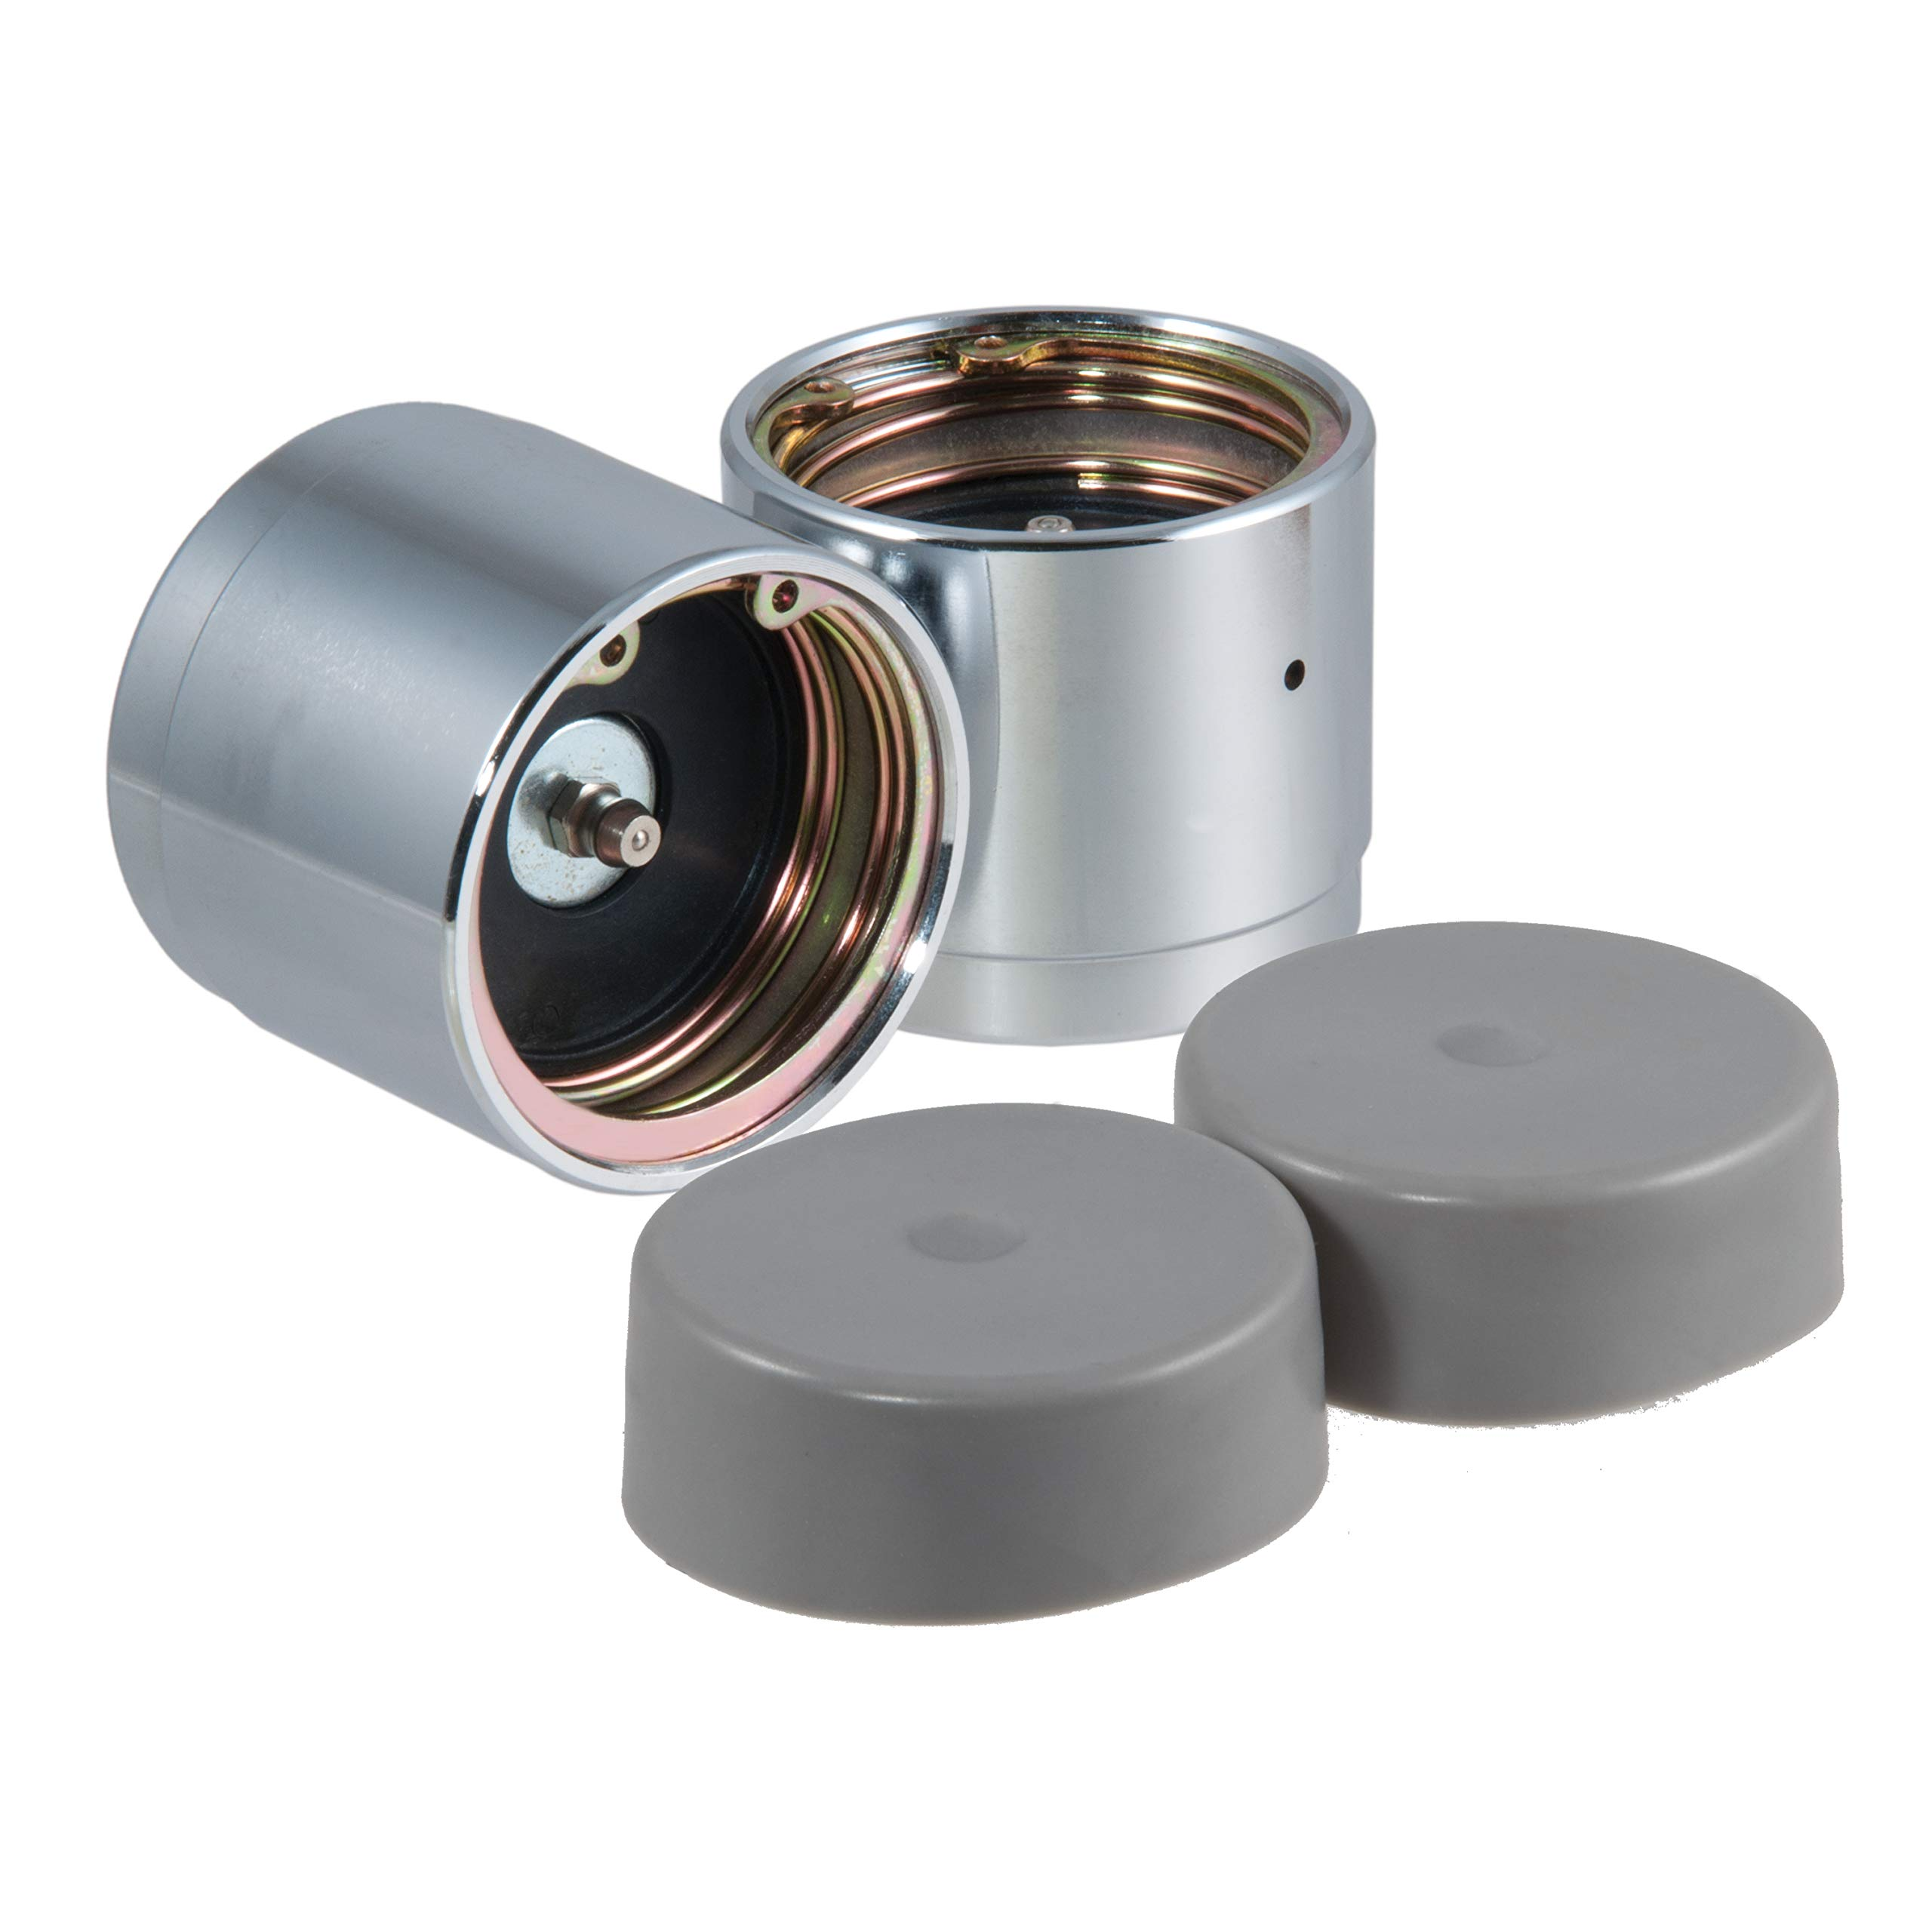 CURT 22232 2.32-Inch Bearing Protectors and Dust Covers, 2-Pack